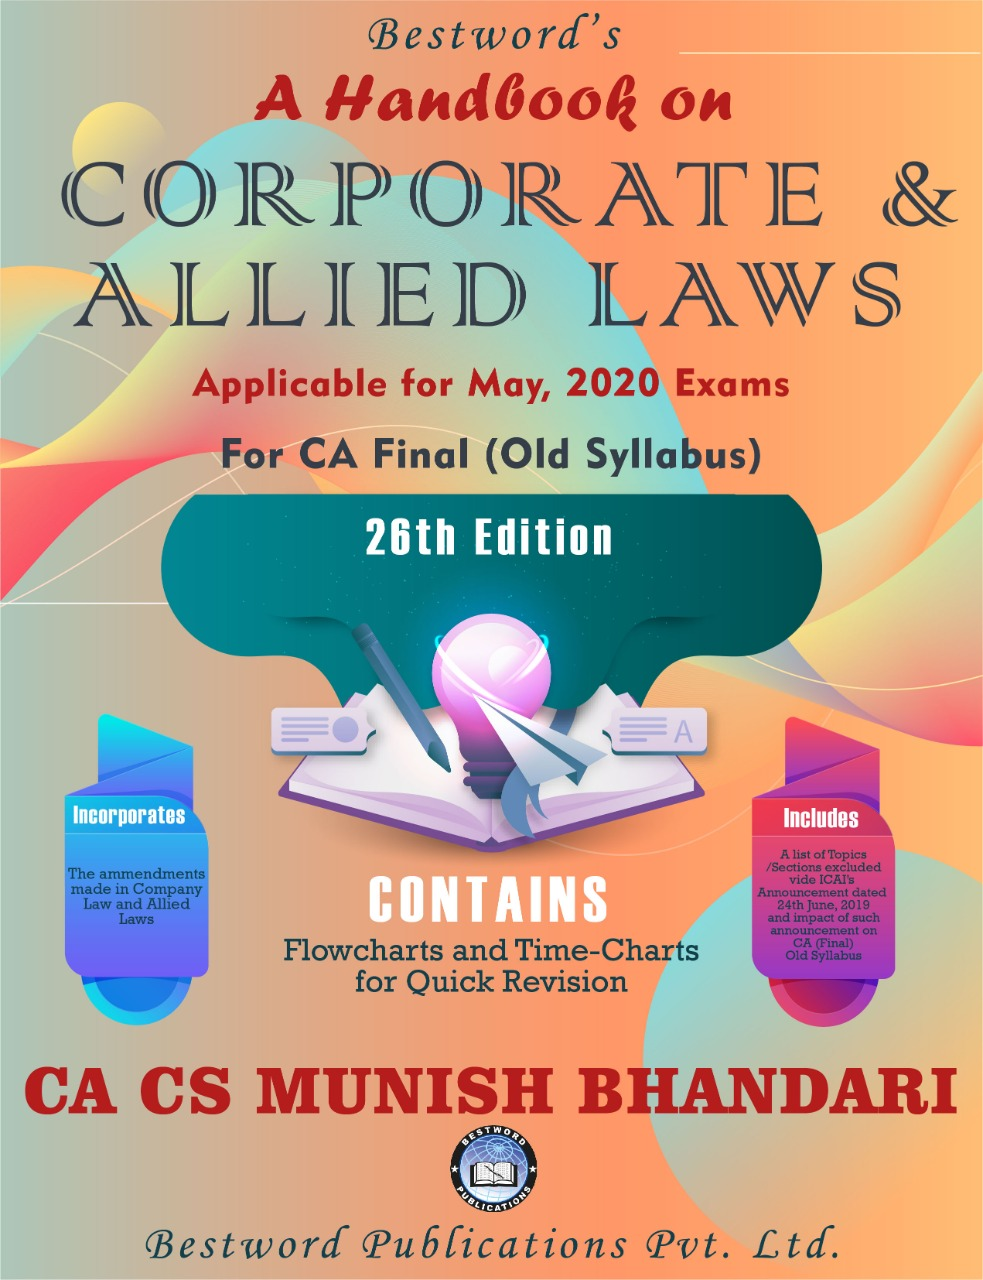 bestword's-a-handbook-on-corporate-and-allied-laws---by-ca-cs-munish-bhandari---26th-edition---for-ca-(final)-may,-2020-exams-(old-syllabus)